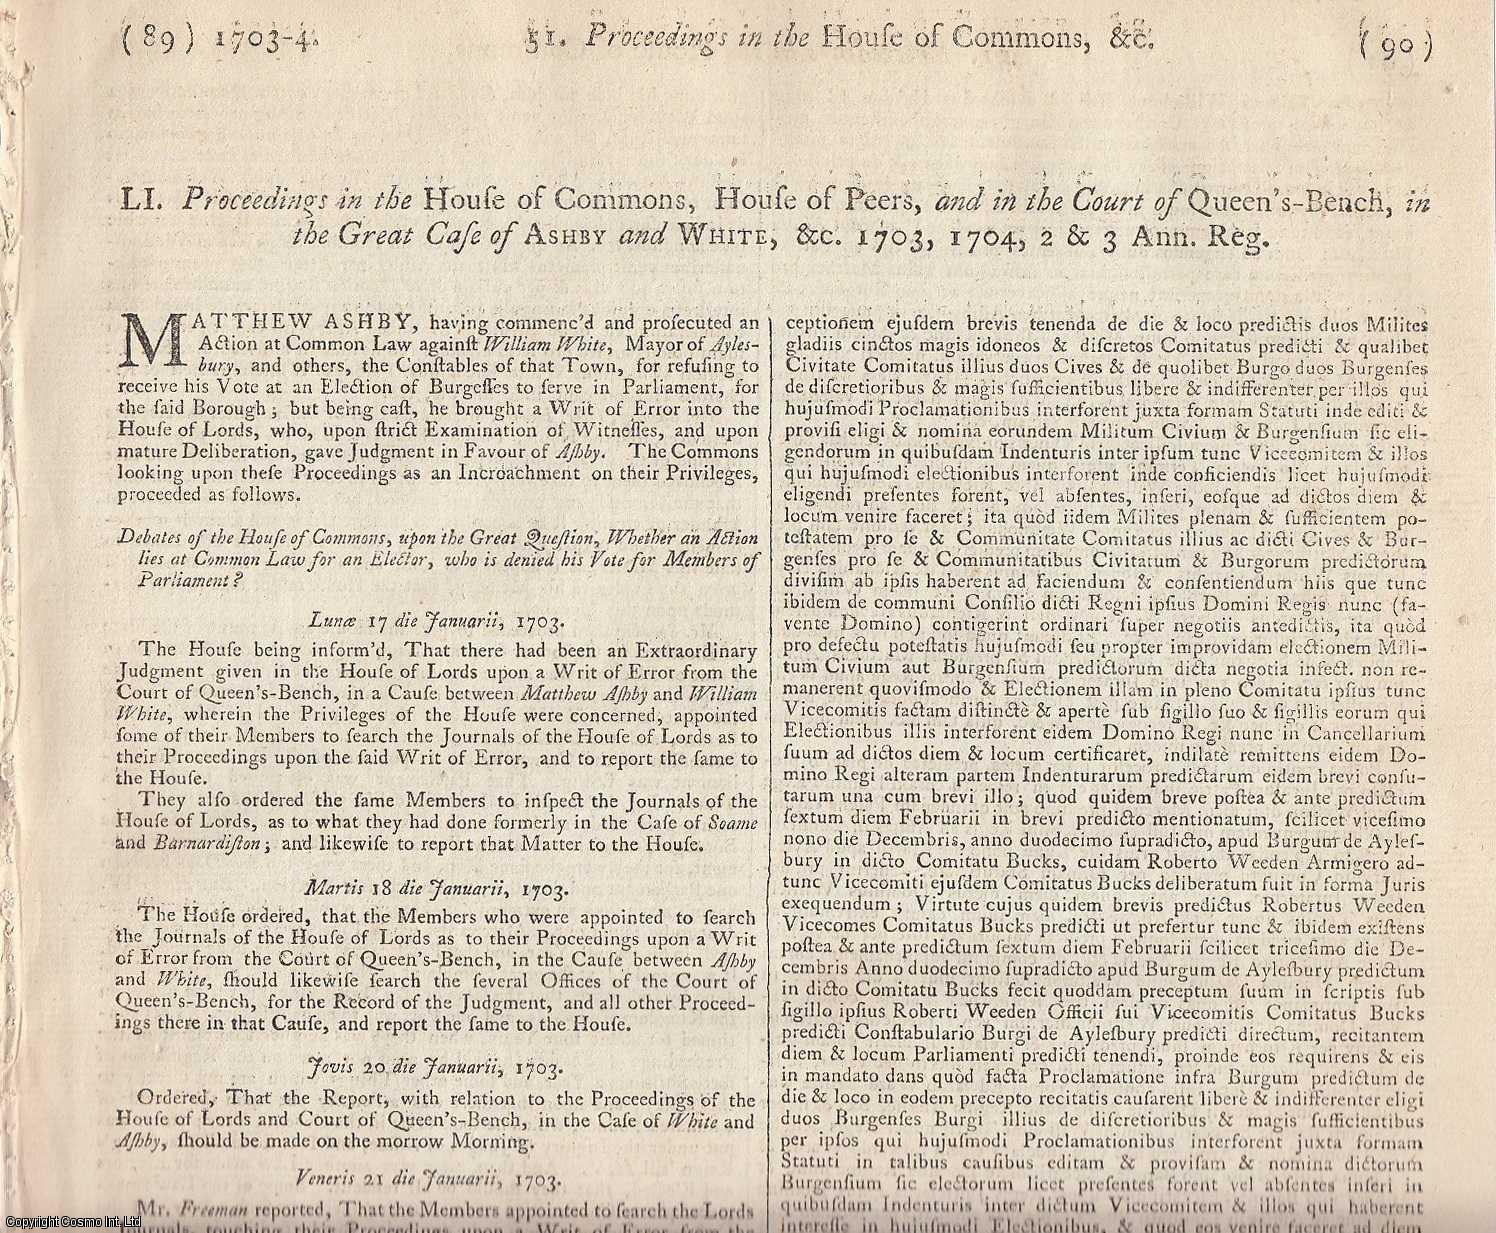 AYLESBURY ELECTION CASE - FOUNDATION OF TORT LAW.  Proceedings in the House of Commons, House of Peers, and in the Court of Queen's Bench, in the Great Case of Ashby and White, etc. 1703, 1704., [Trial].